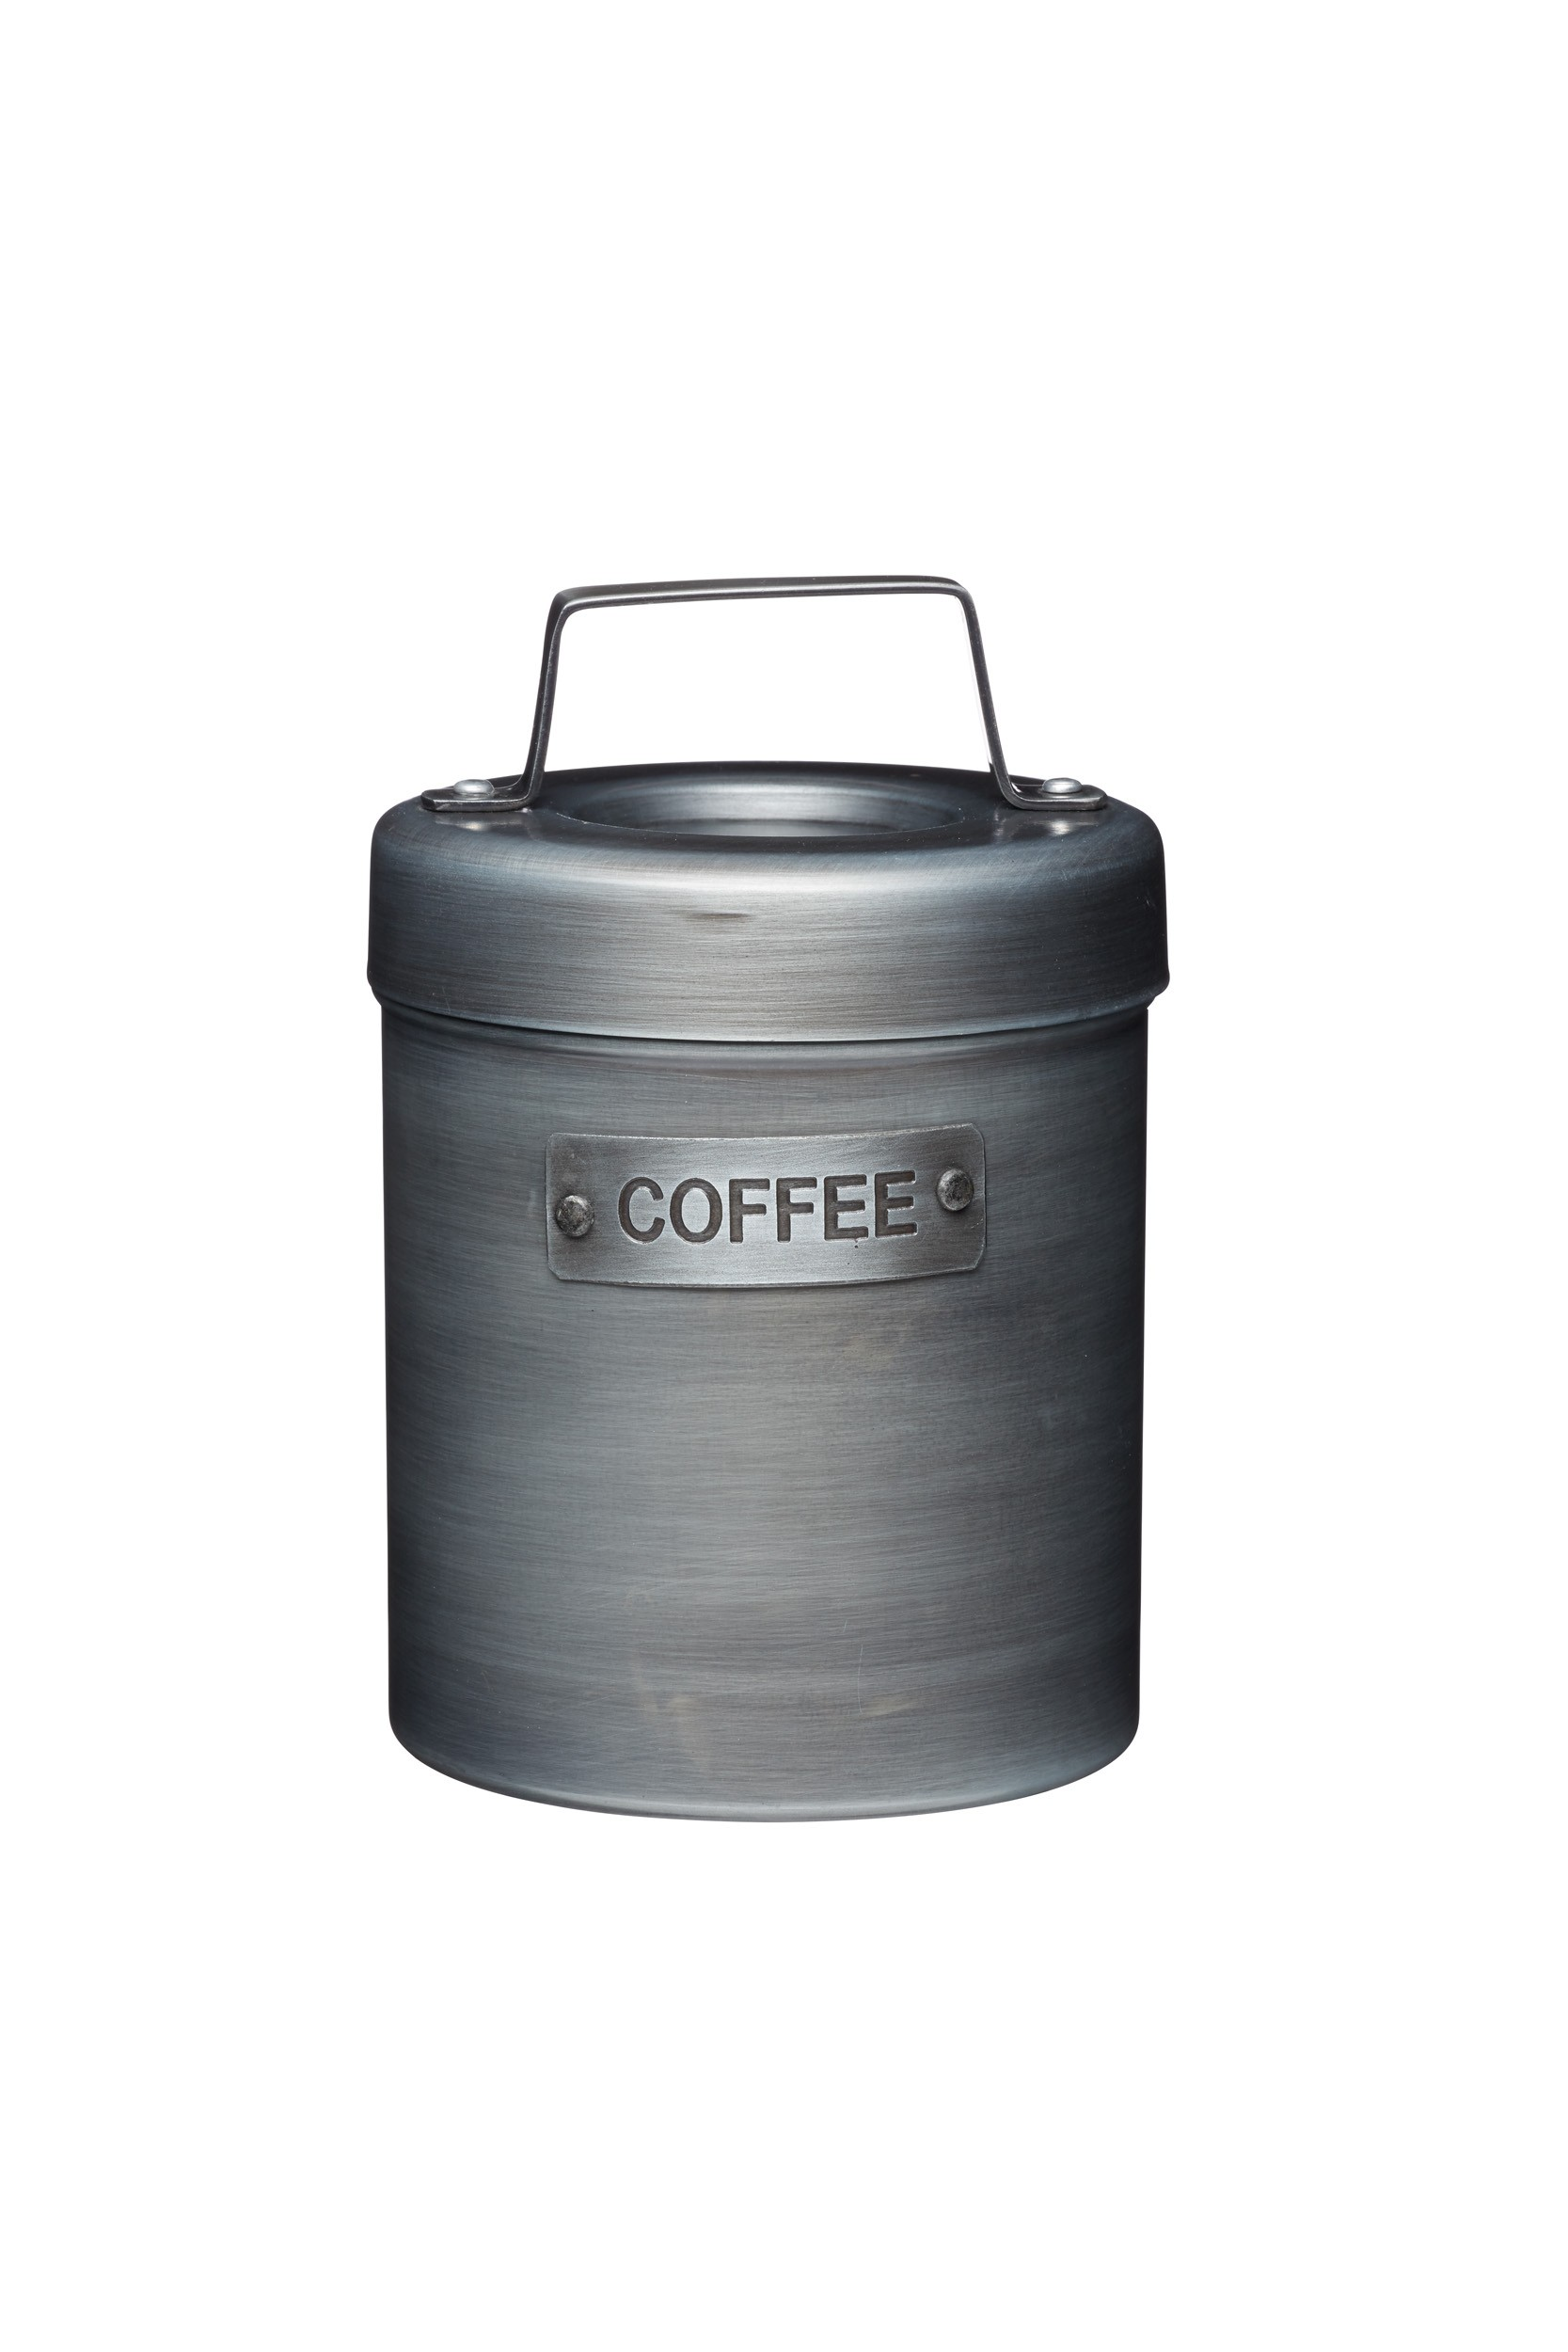 Buy the Kitchen Vintage-Style Metal Coffee Caddy online at smithsofloughton.com